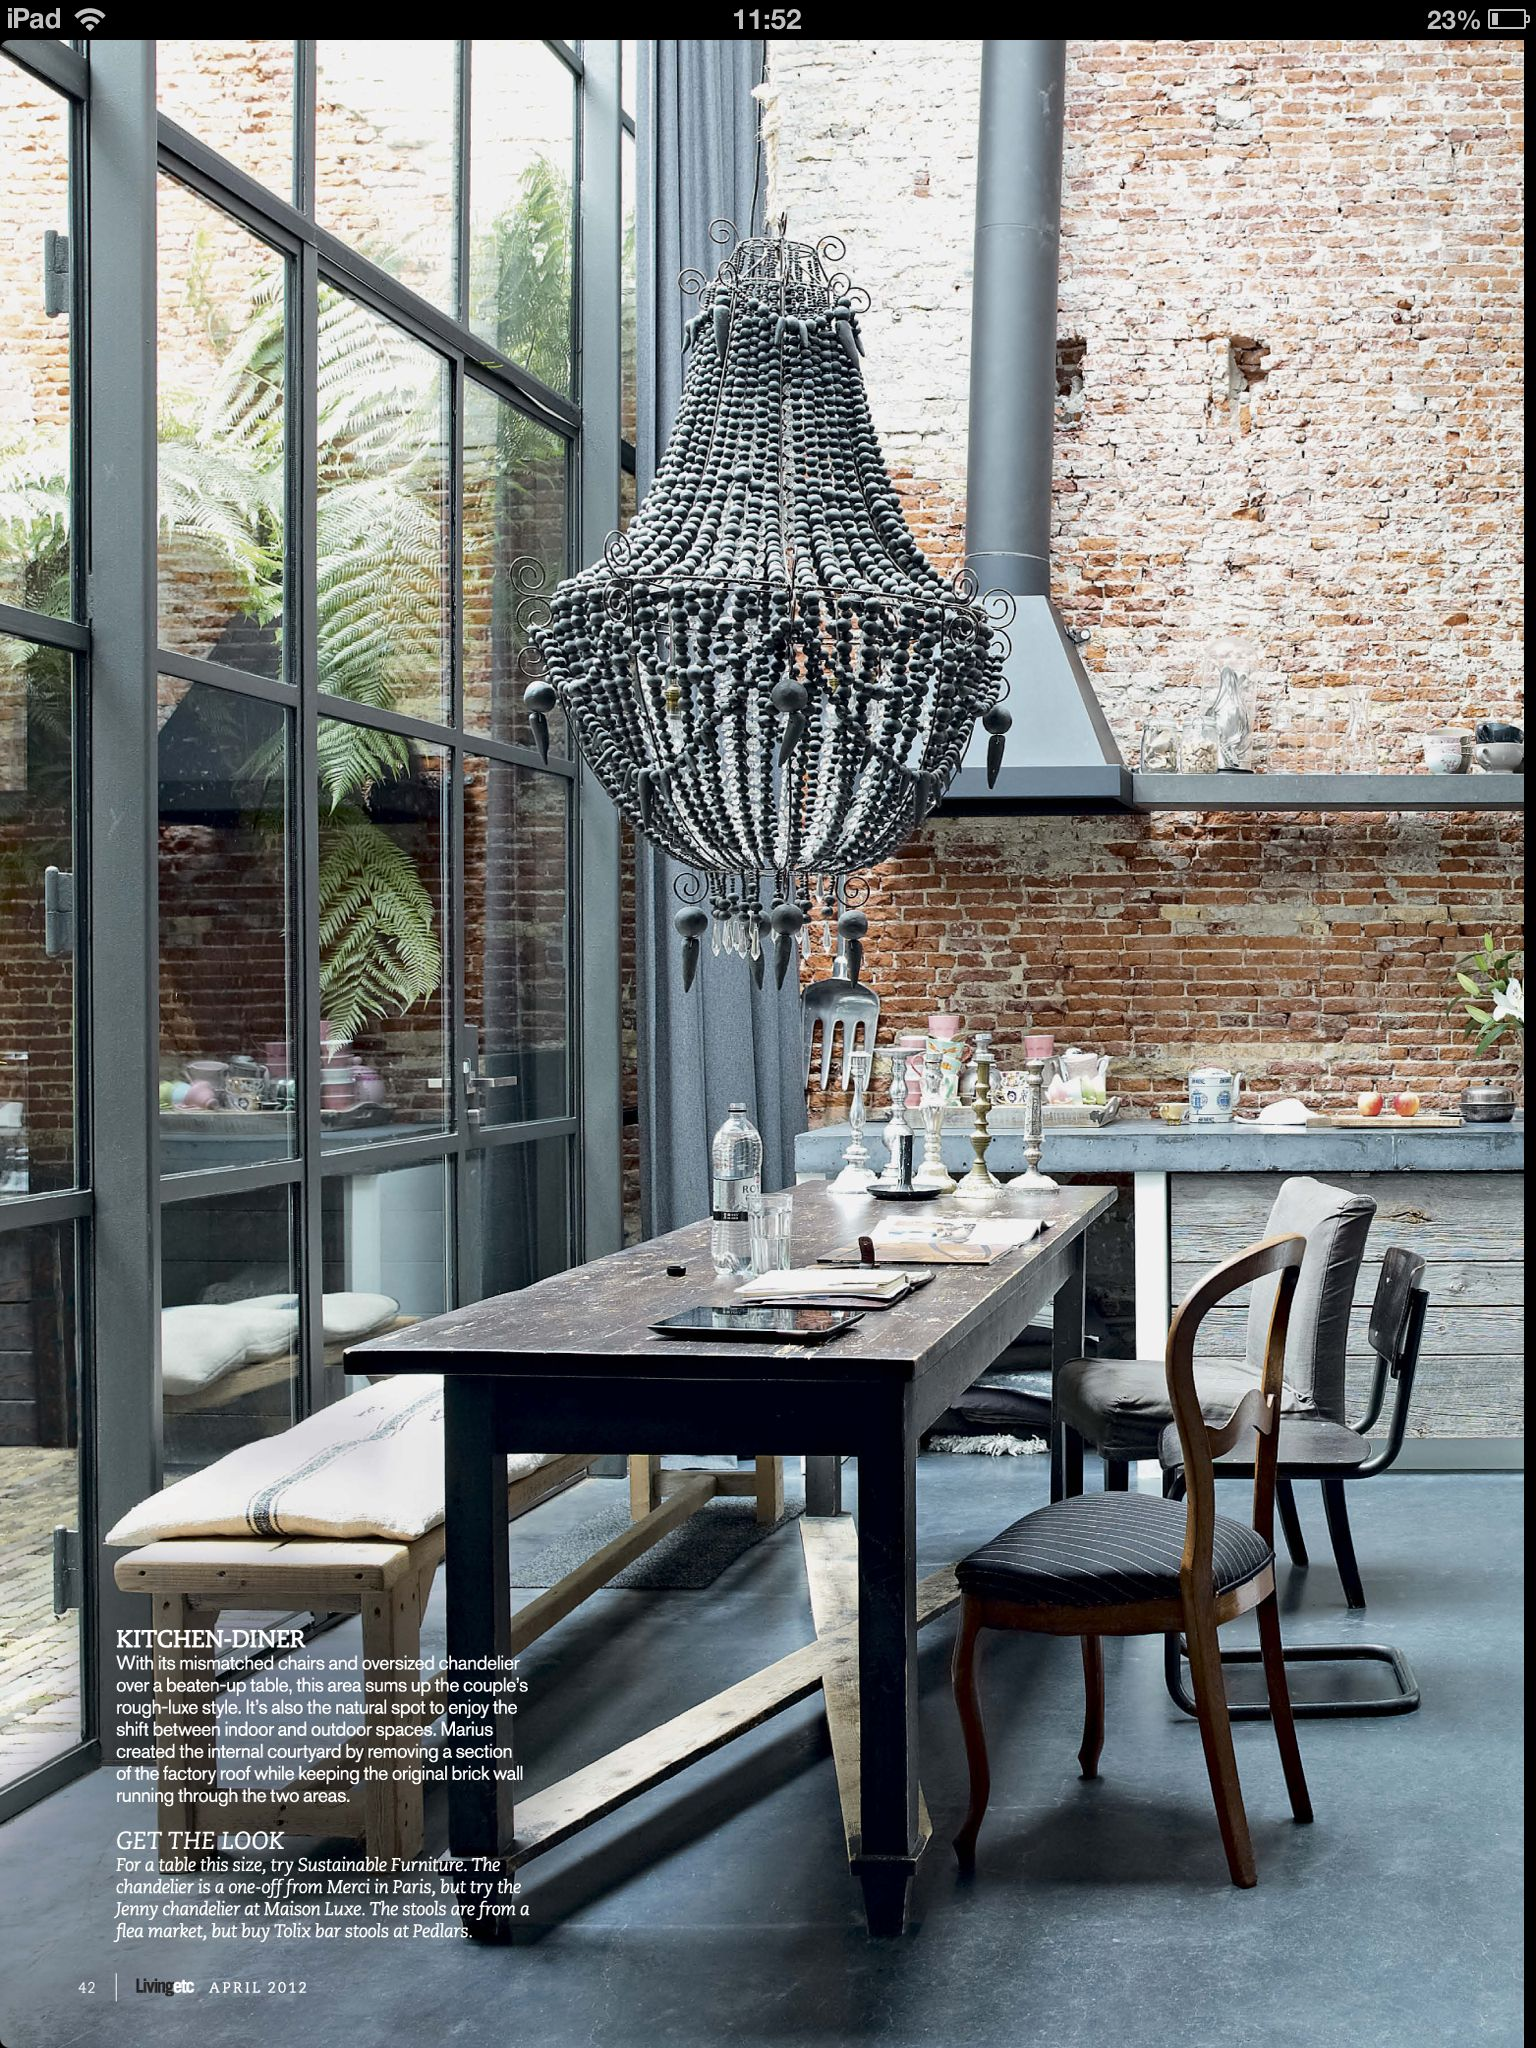 Gorgeous chandelier against exposed brickwork from living etc